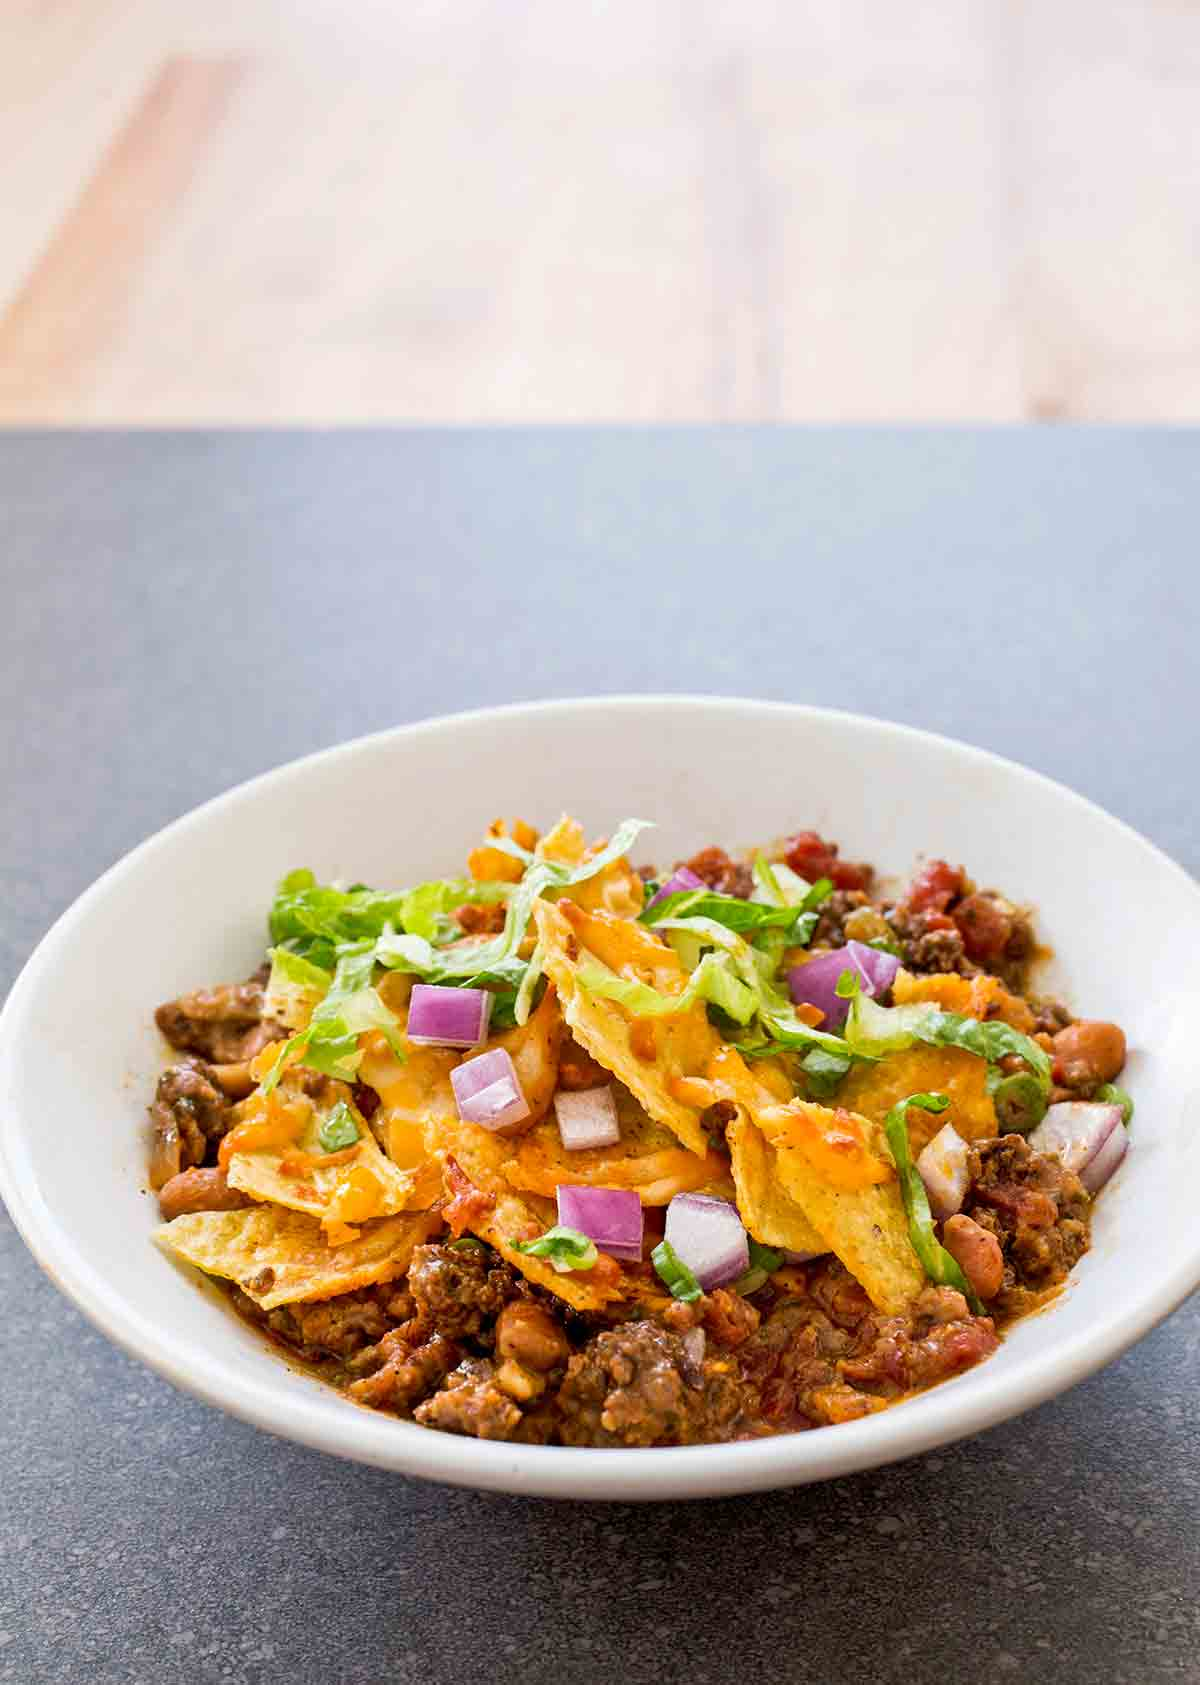 White bowl of spicy beef taco bake with ground beef, beans tortilla chips, chopped onions, and lettuce